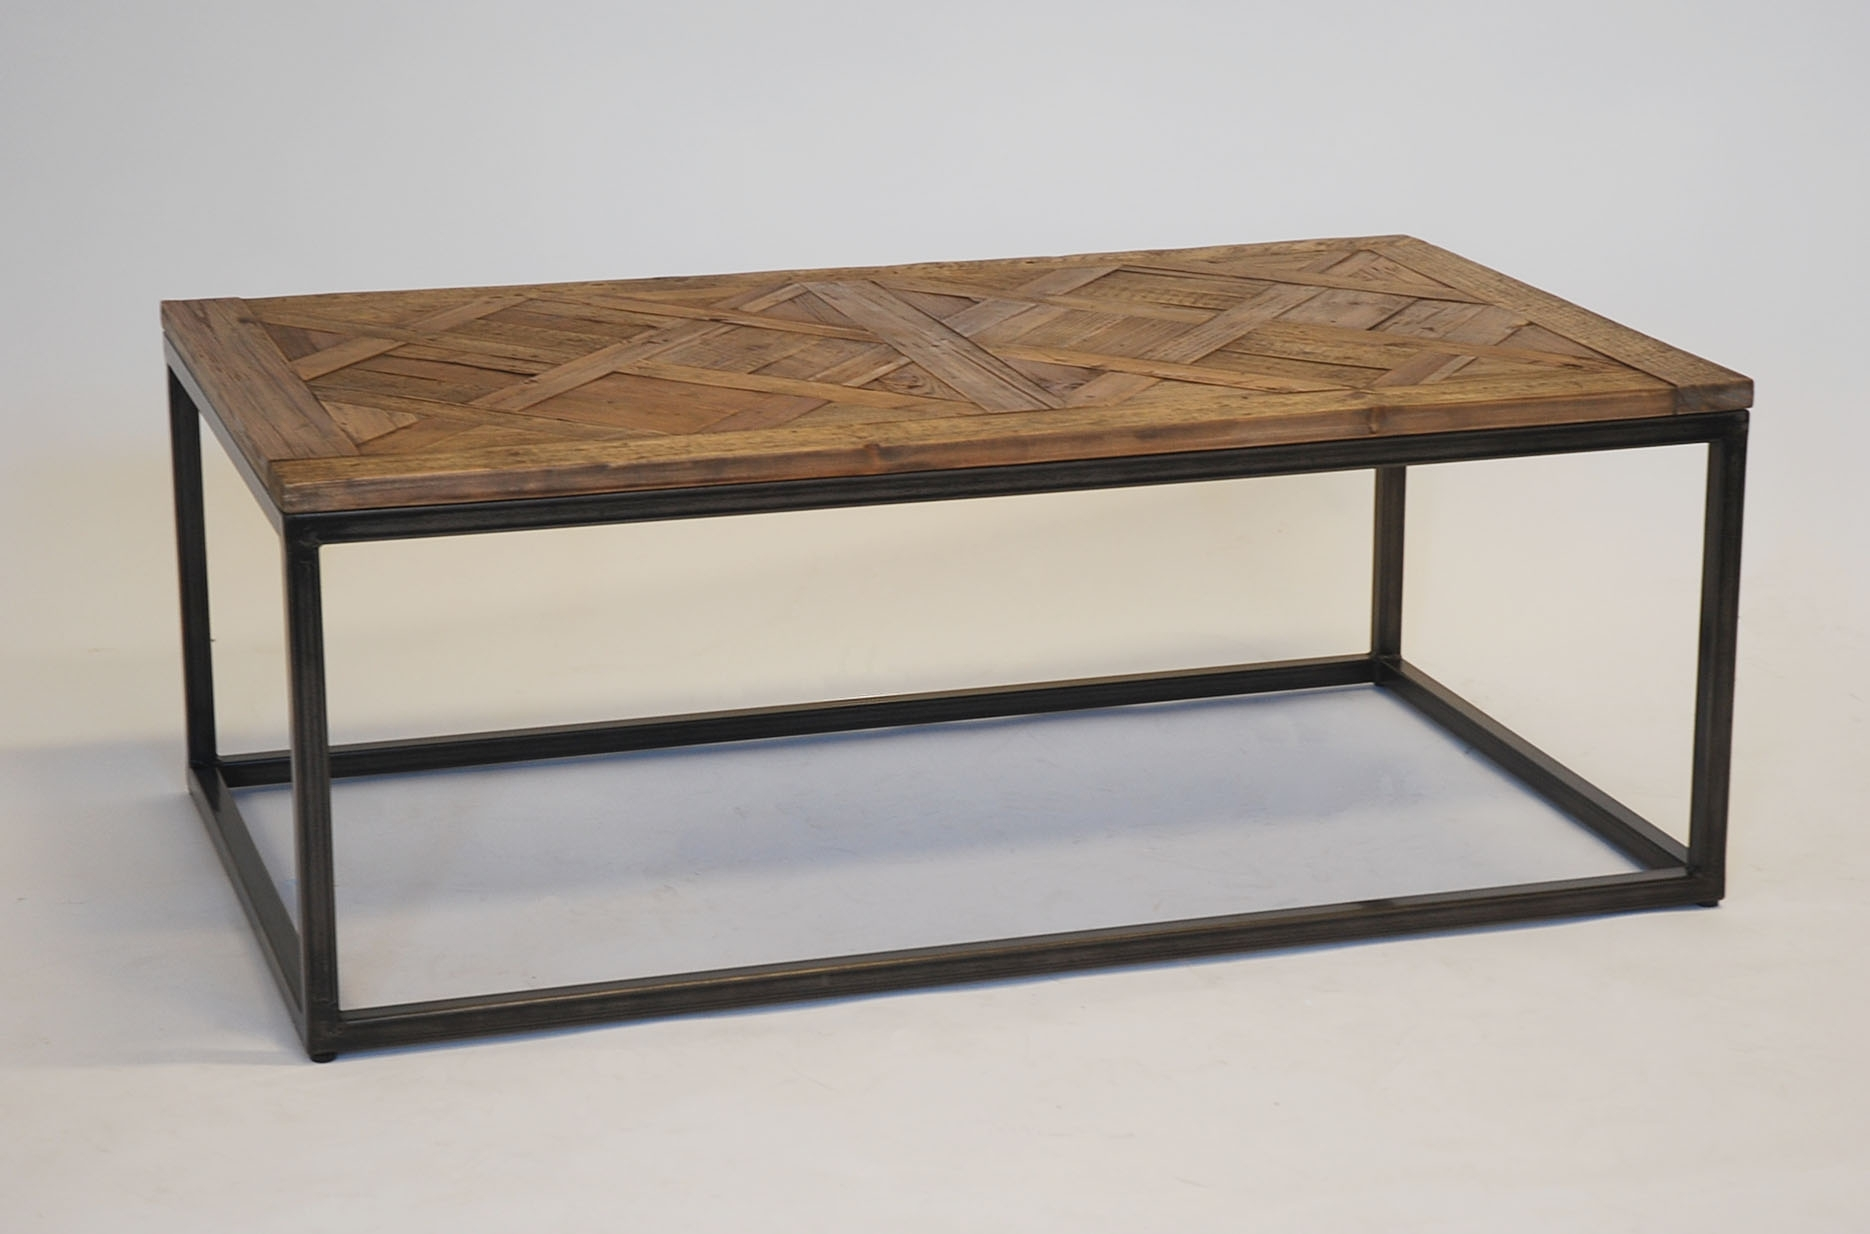 Oak Parquet Coffee Table | Hire & Rental throughout Parquet Coffee Tables (Image 21 of 30)